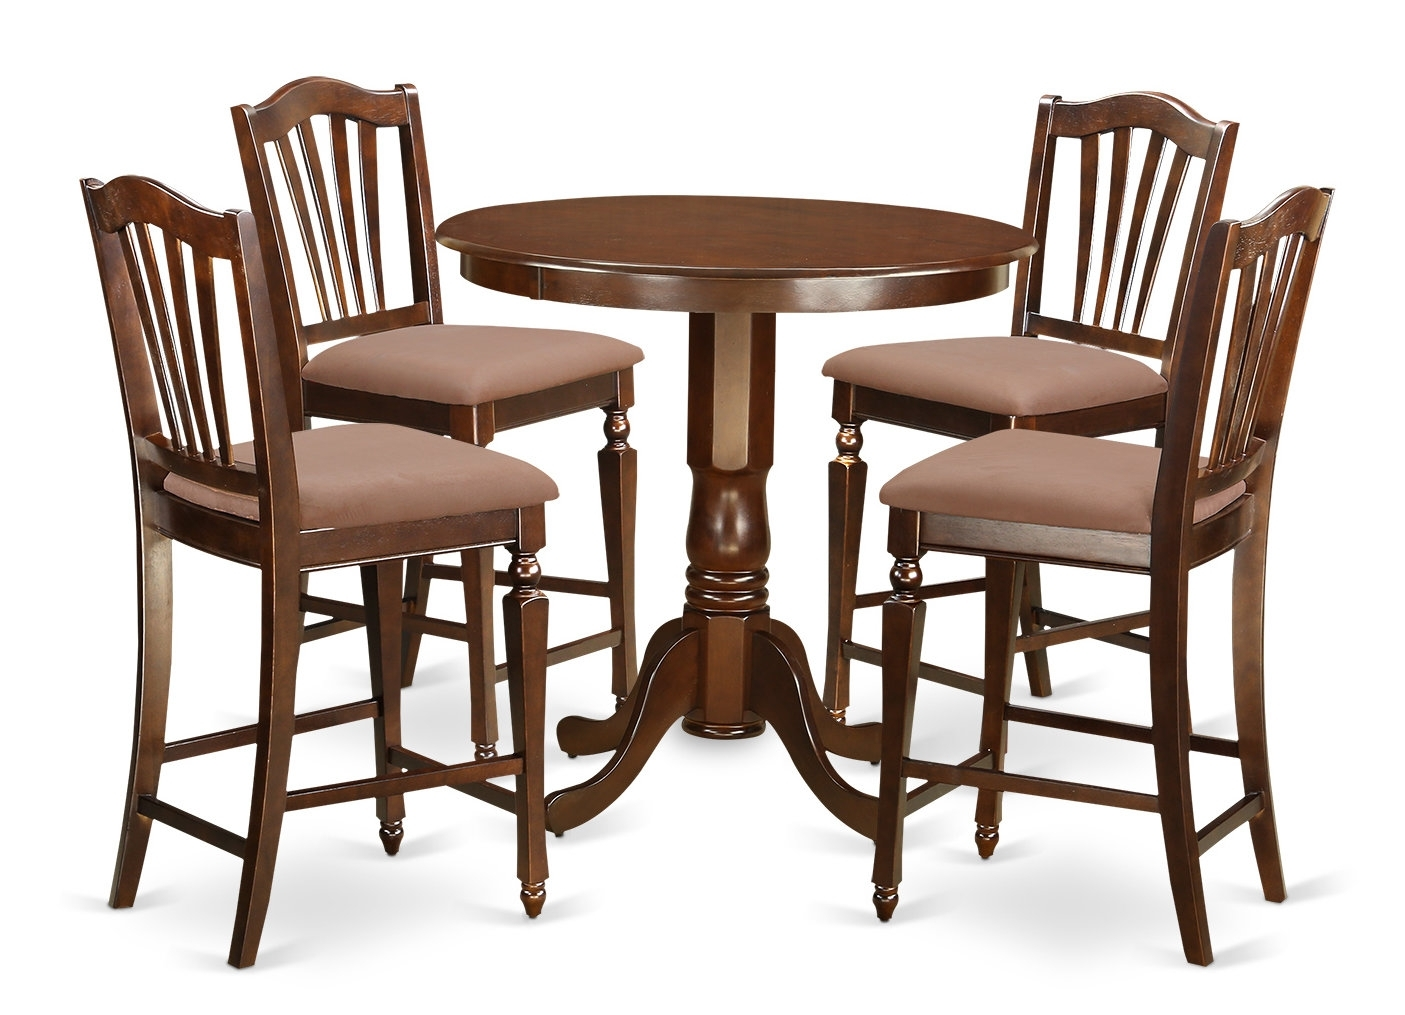 East West Jackson 5 Piece Counter Height Pub Table Set | Wayfair Regarding Most Recently Released Jaxon Grey 5 Piece Extension Counter Sets With Wood Stools (Image 5 of 20)